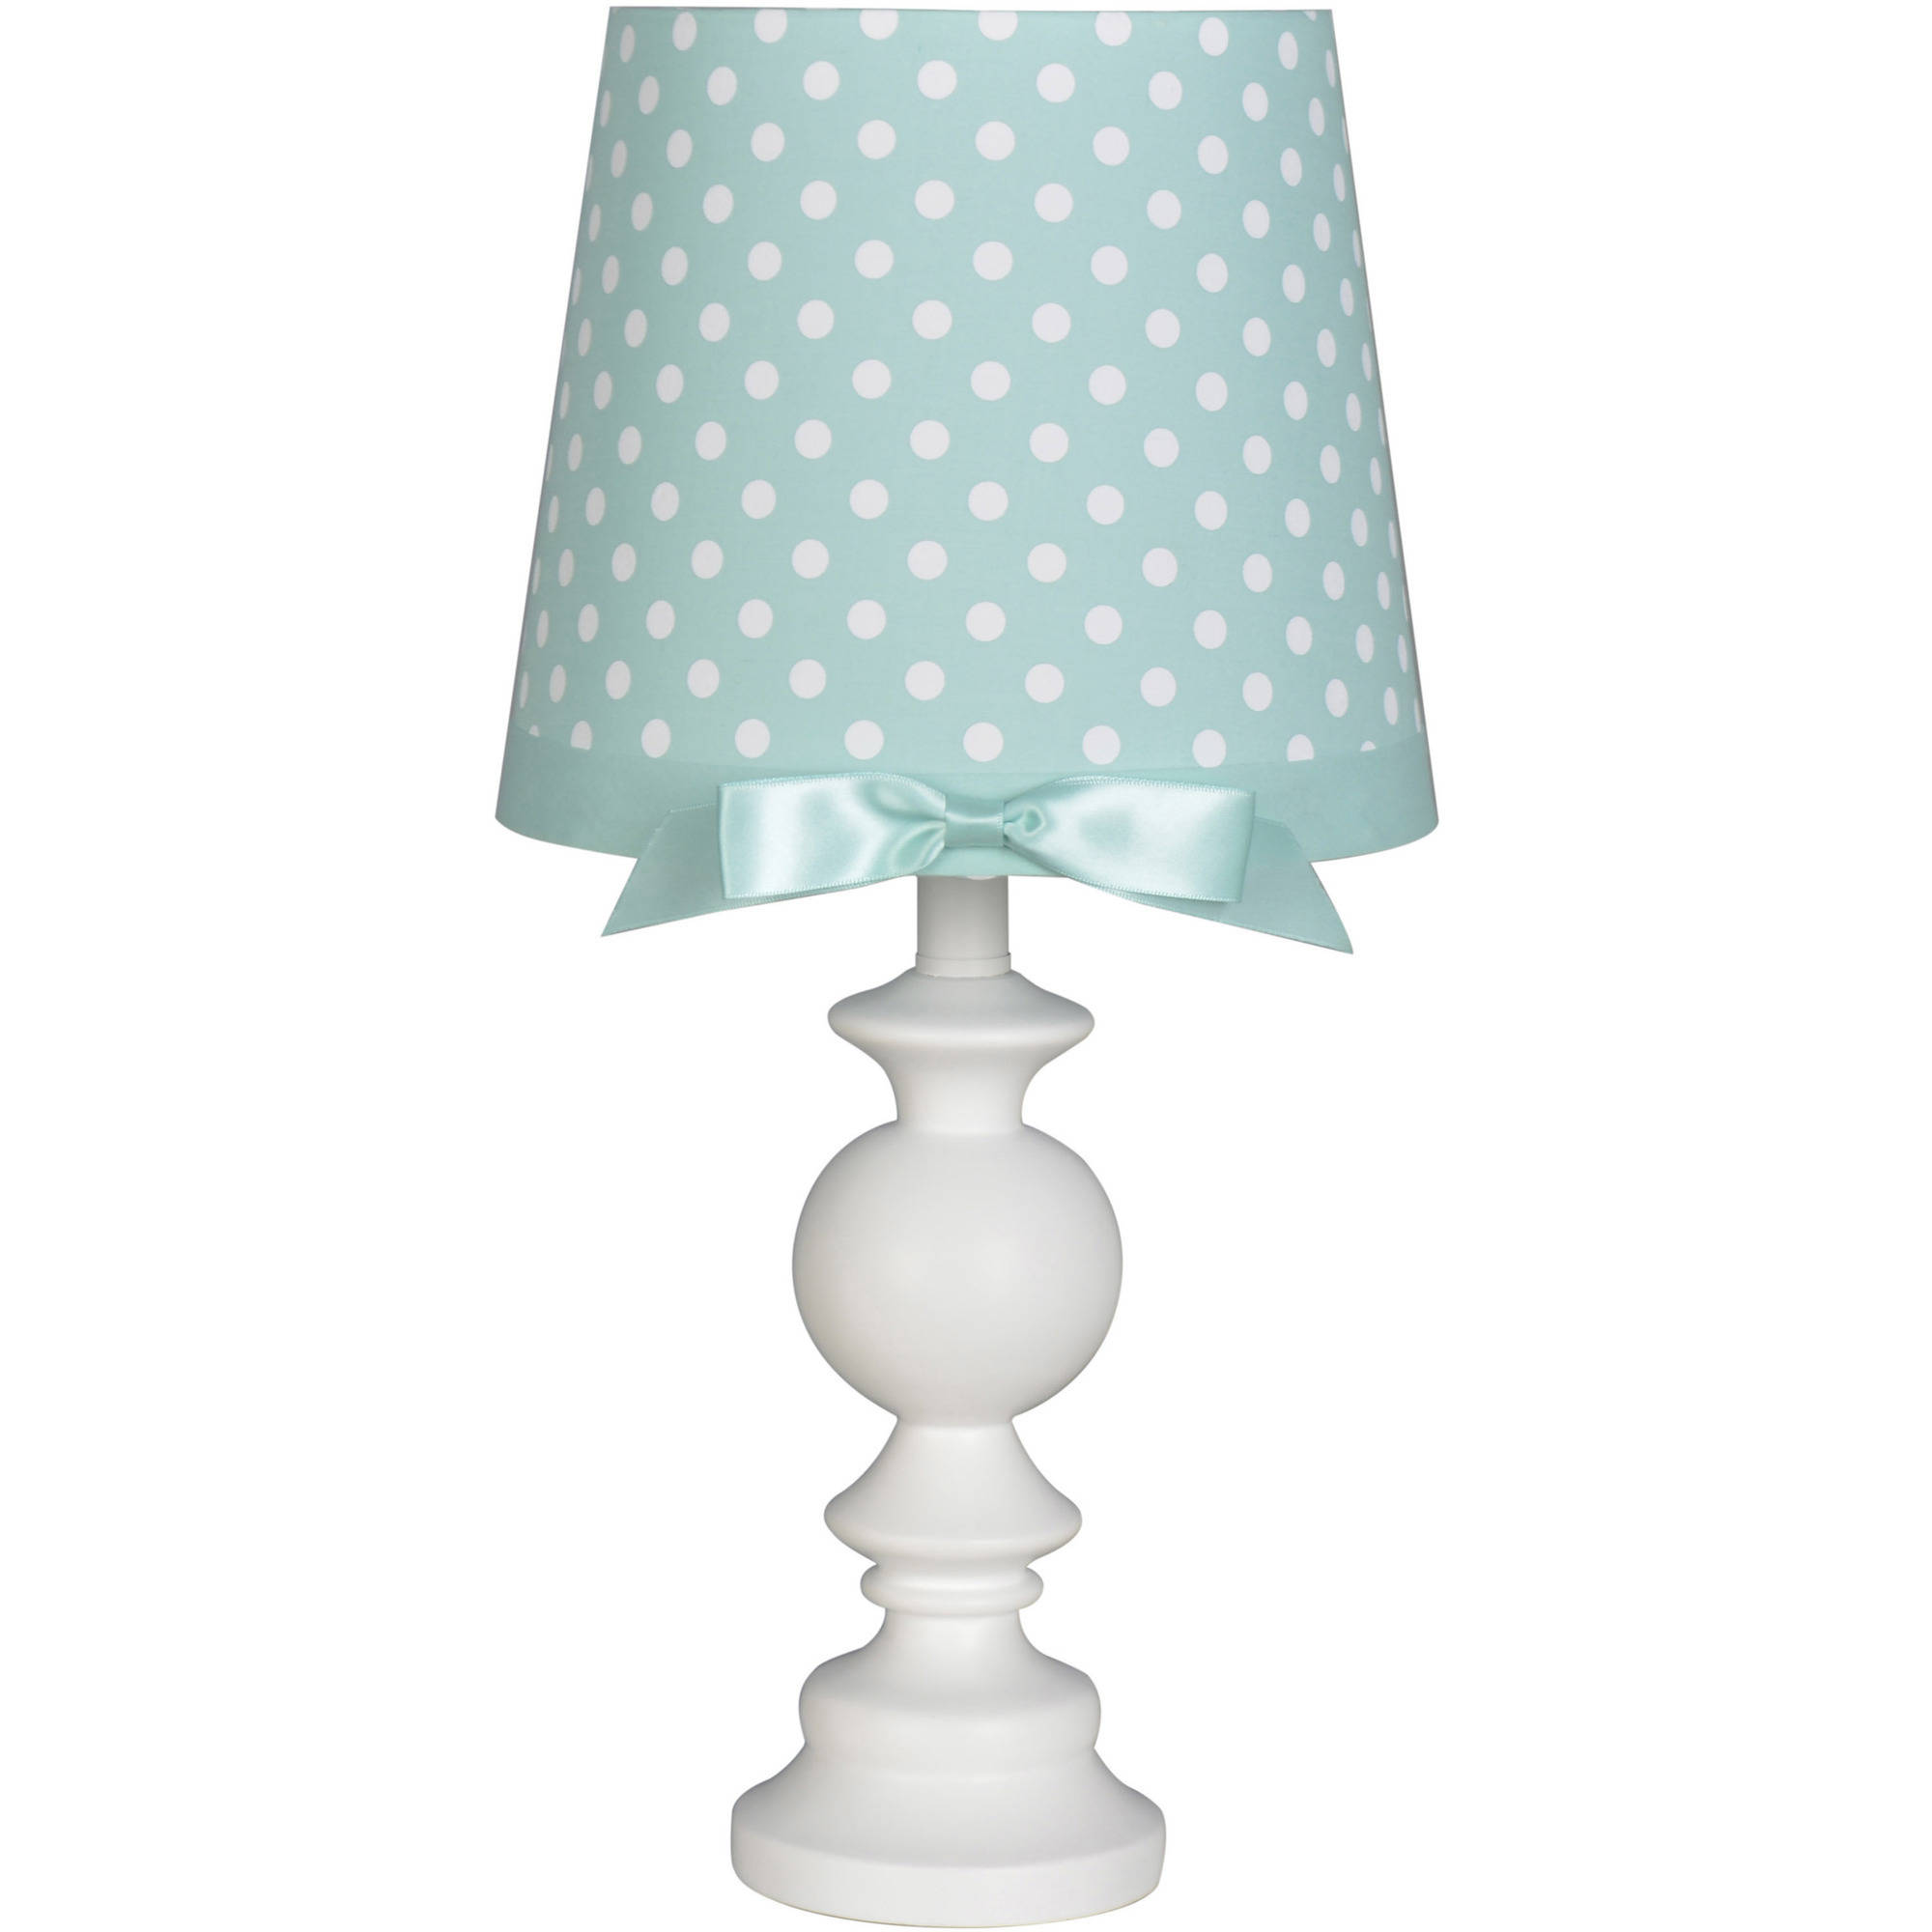 Better Homes and Gardens White Table Lamp with Polka Dot Shade by Mastercraft Distribution USA Inc